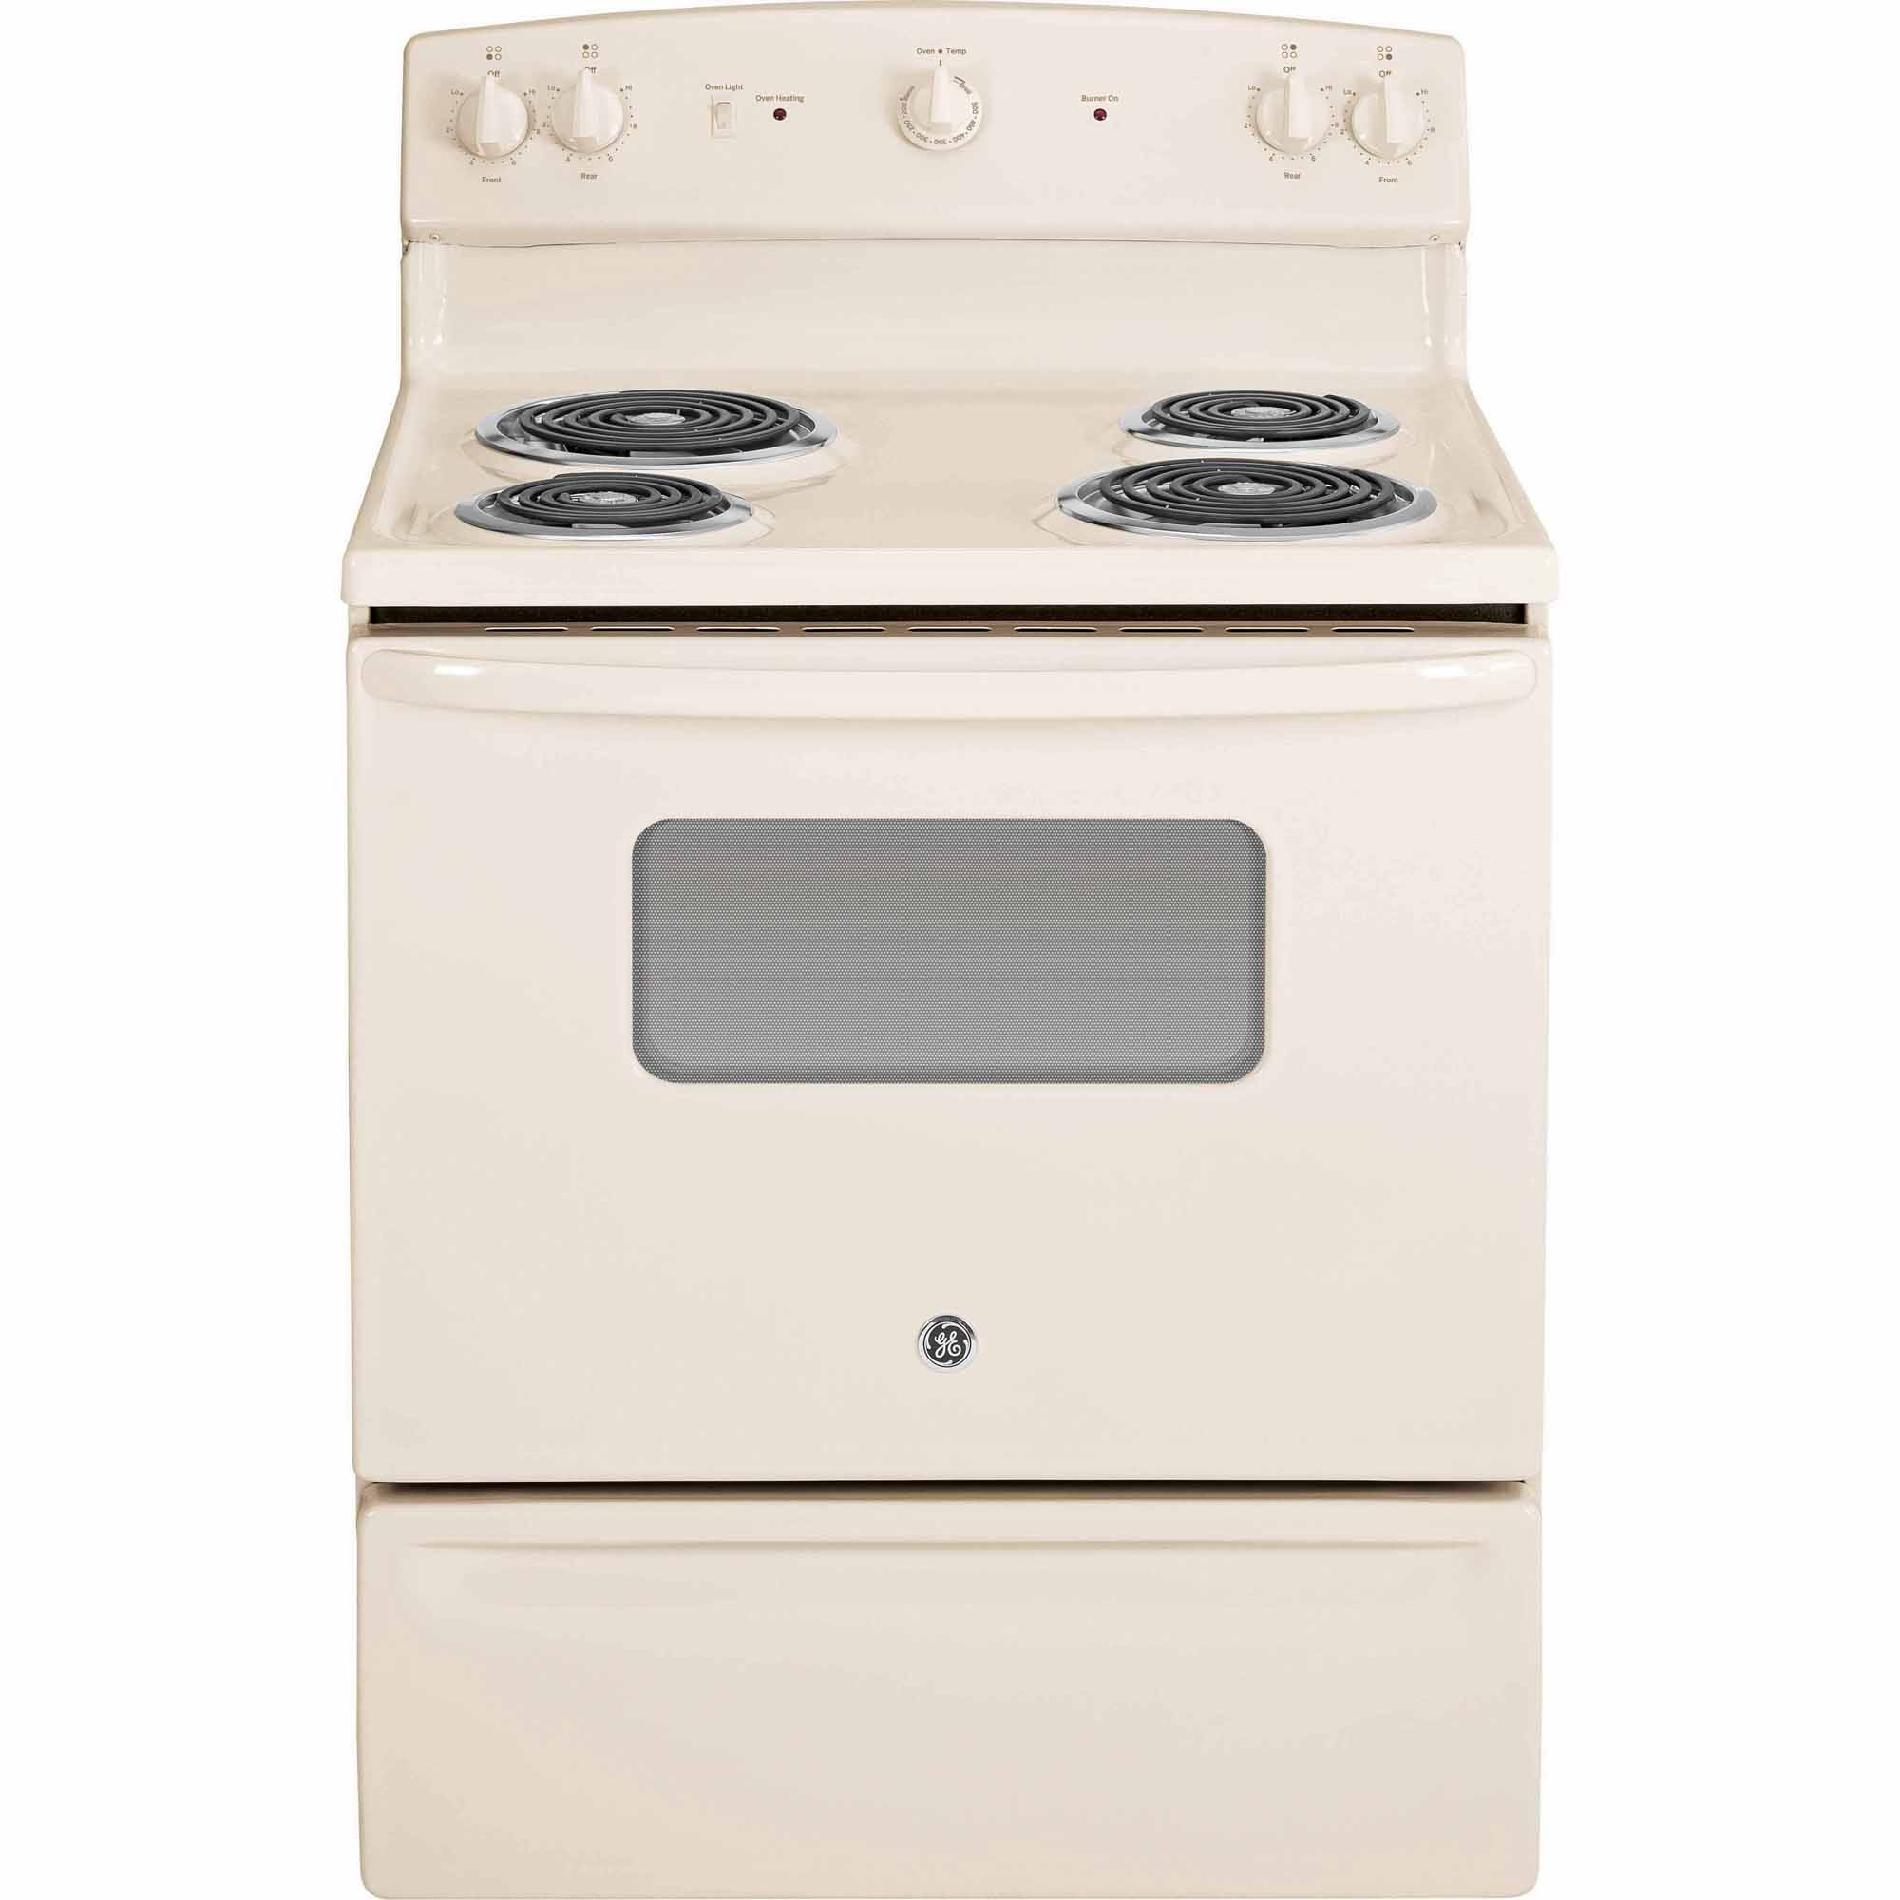 GE Appliances JBS10DFCC 5.0 cu. ft. Electric Range - Bisque